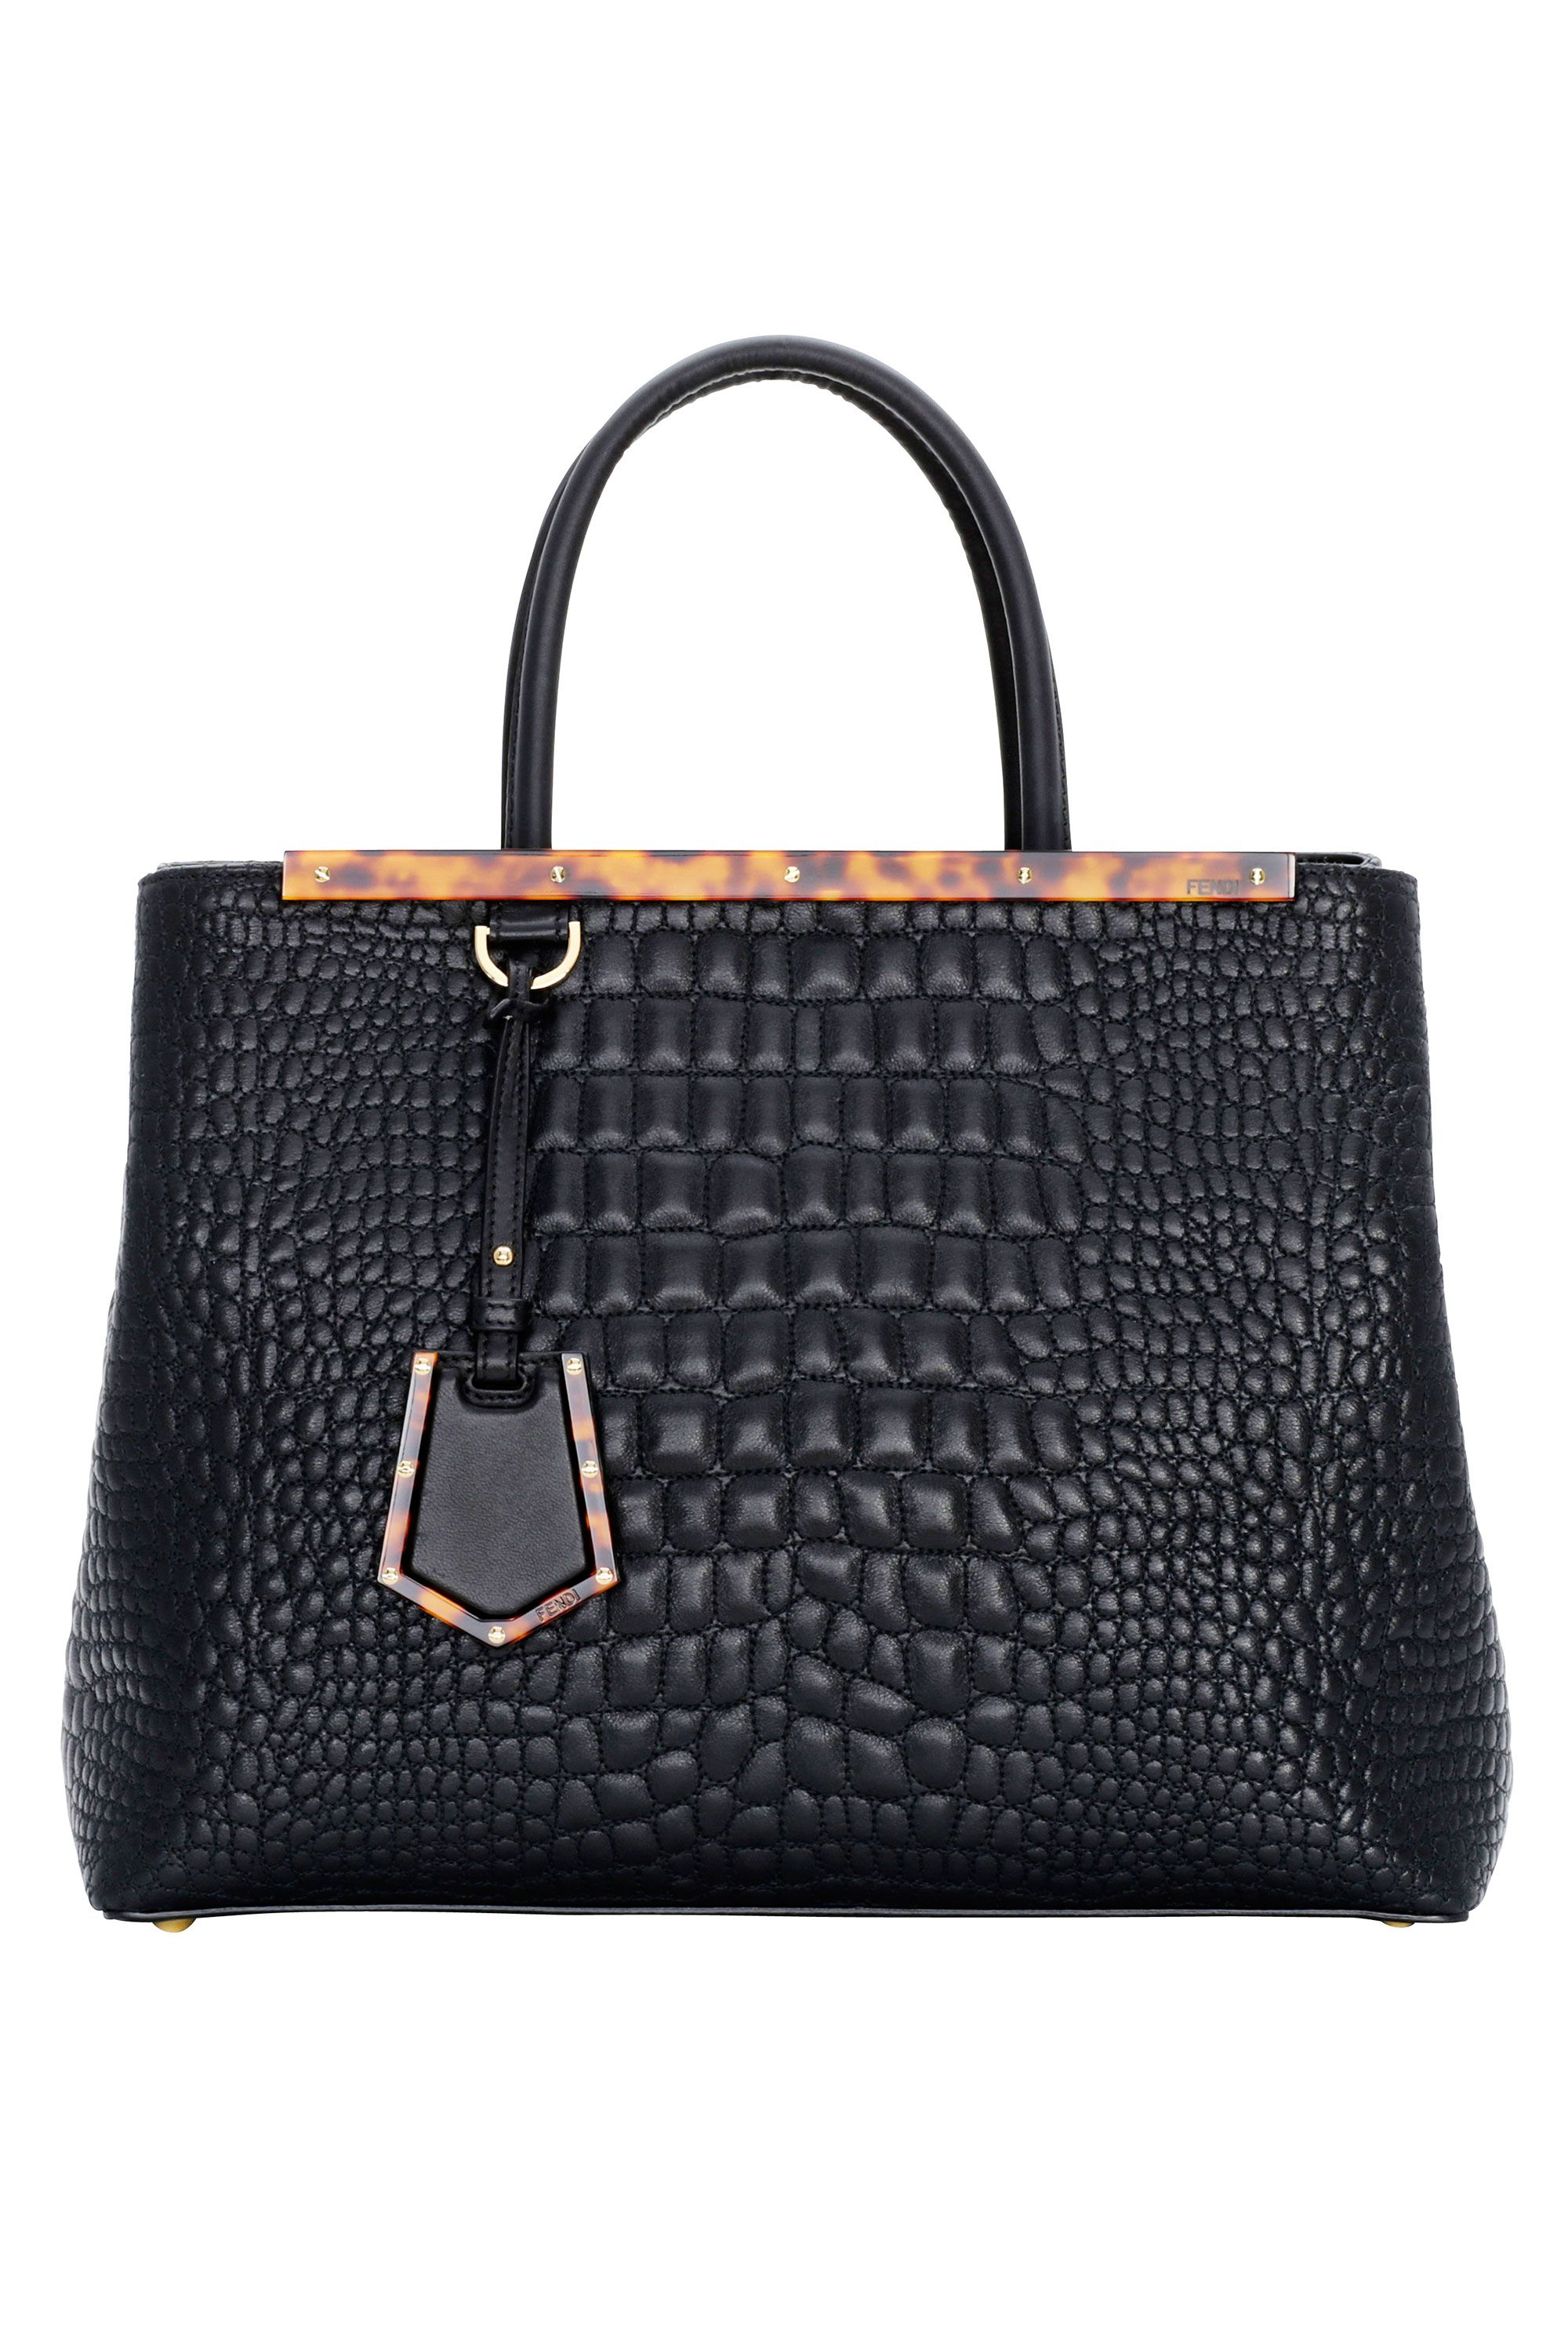 10 designer bags every woman should own | bag, black and purse